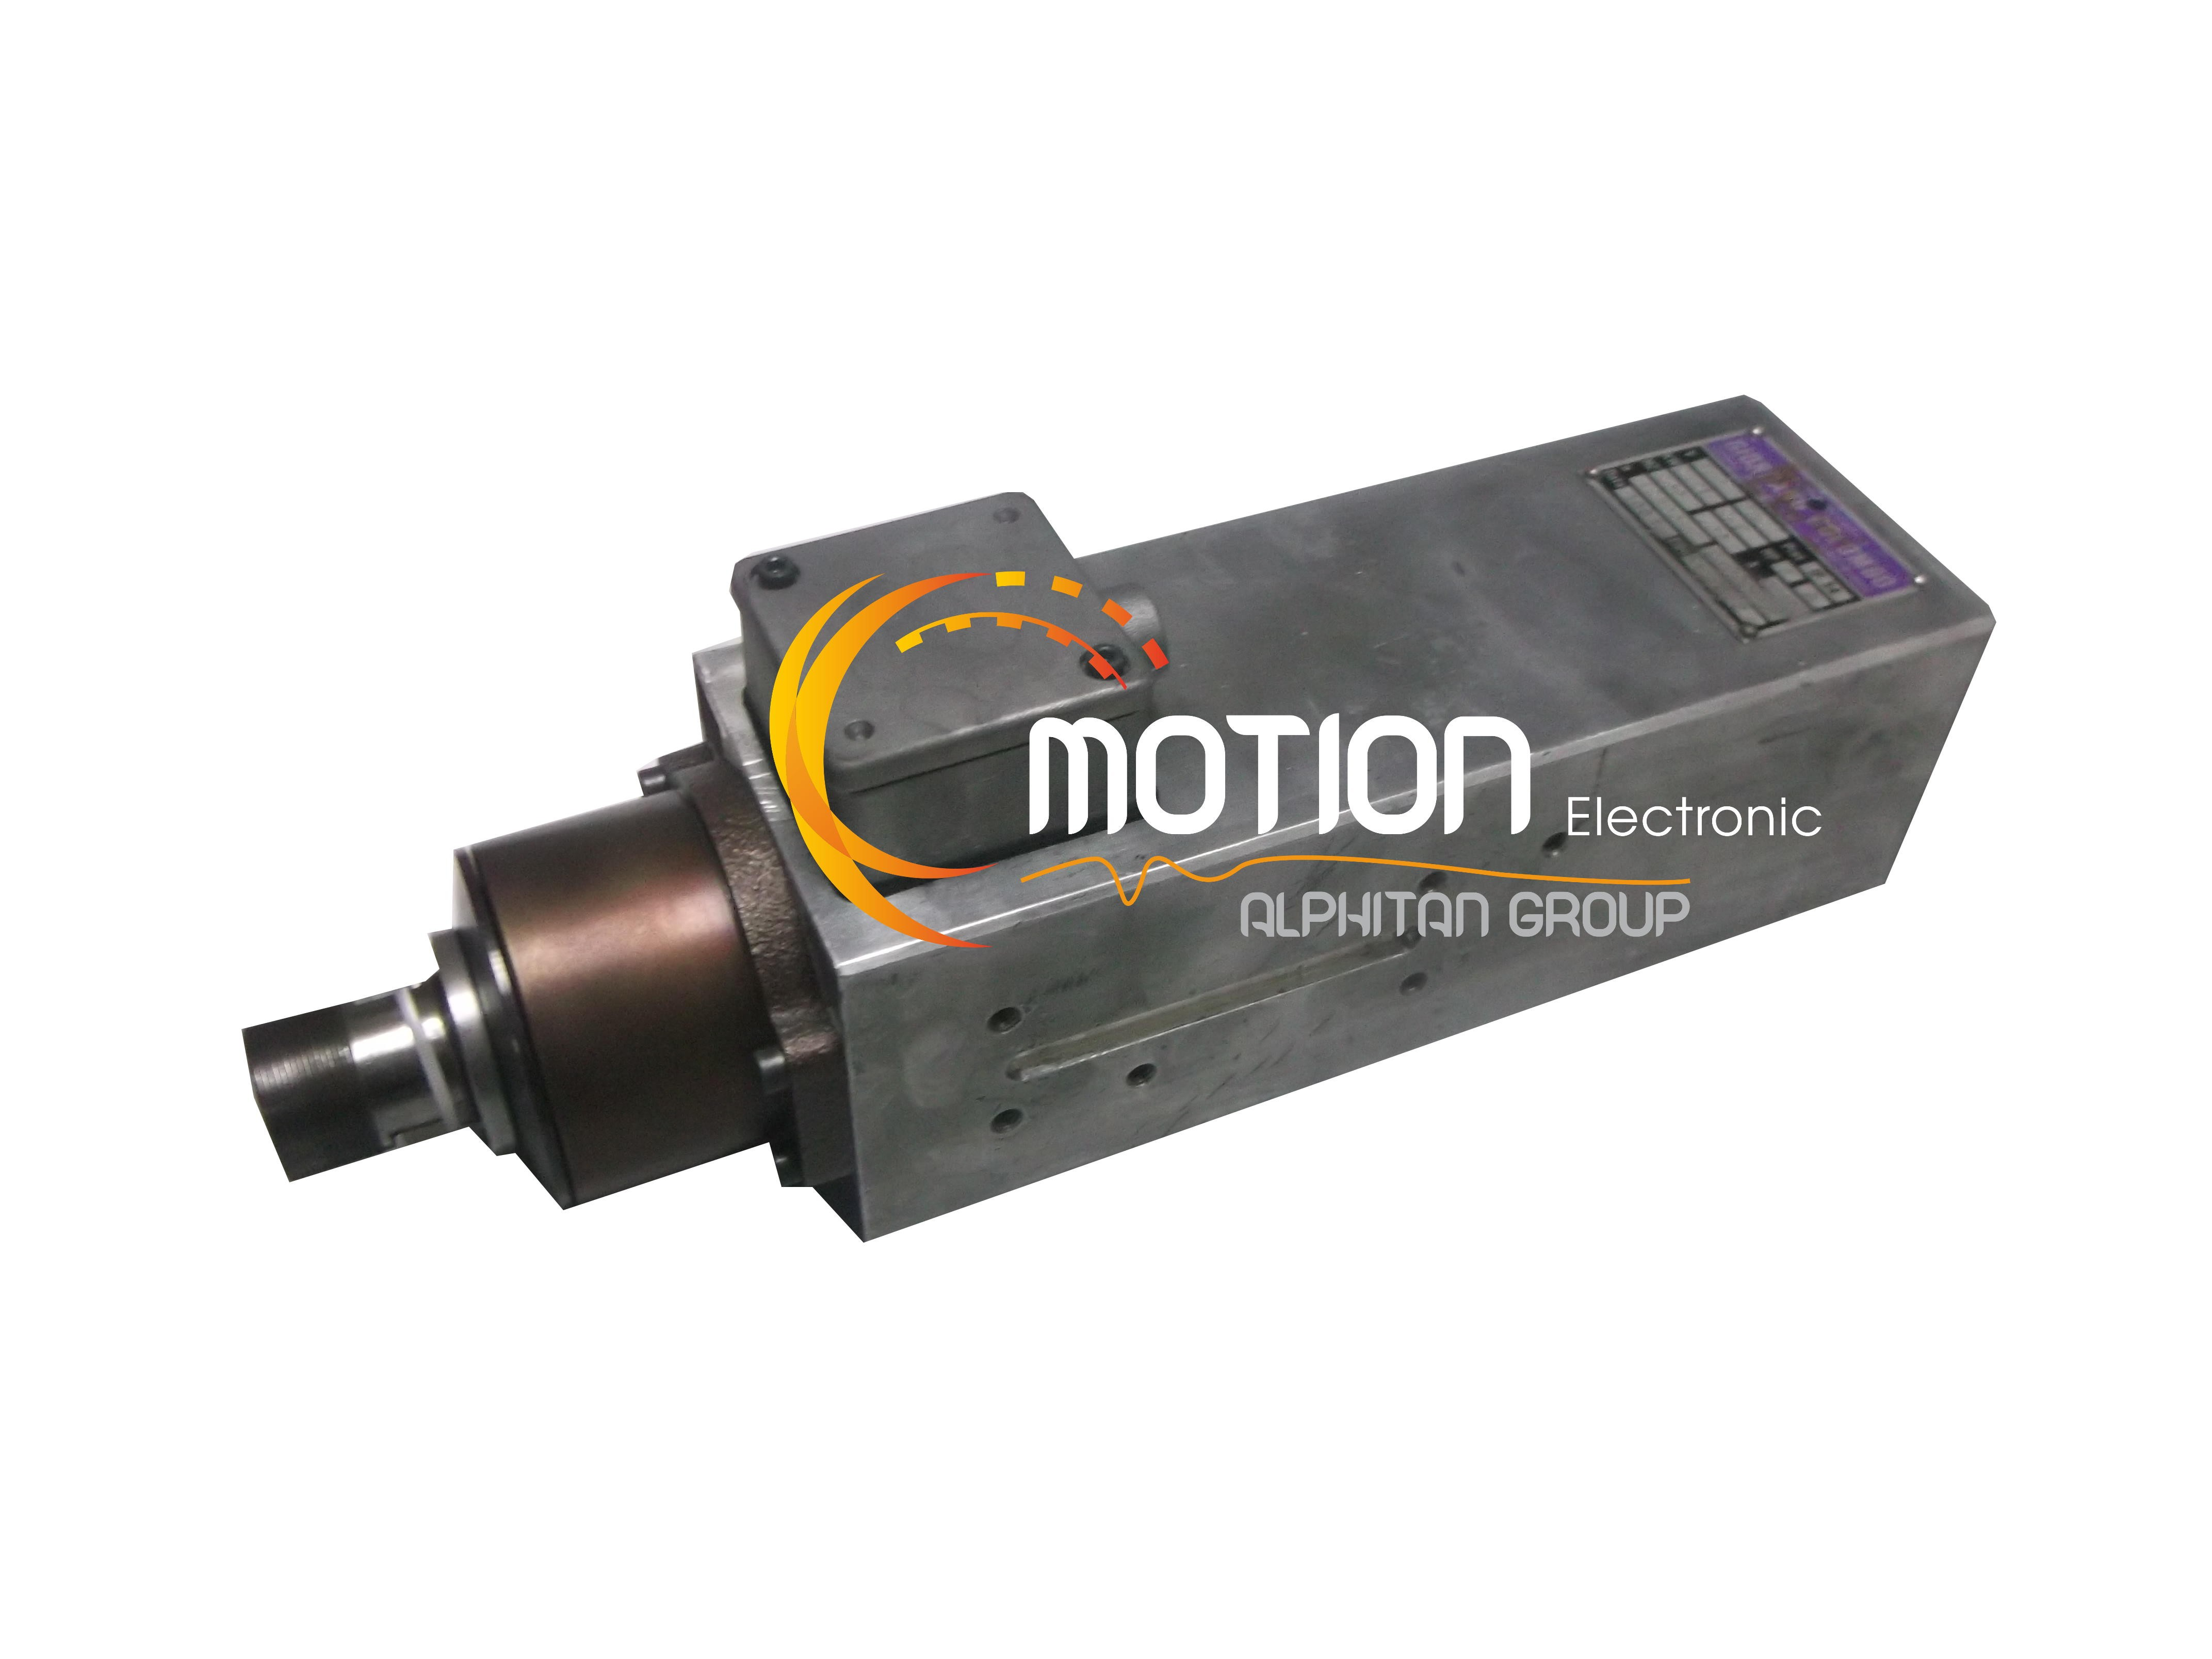 Moteur Dubus Giordano Colombo Rv73 2 on siemens blower motor catalog